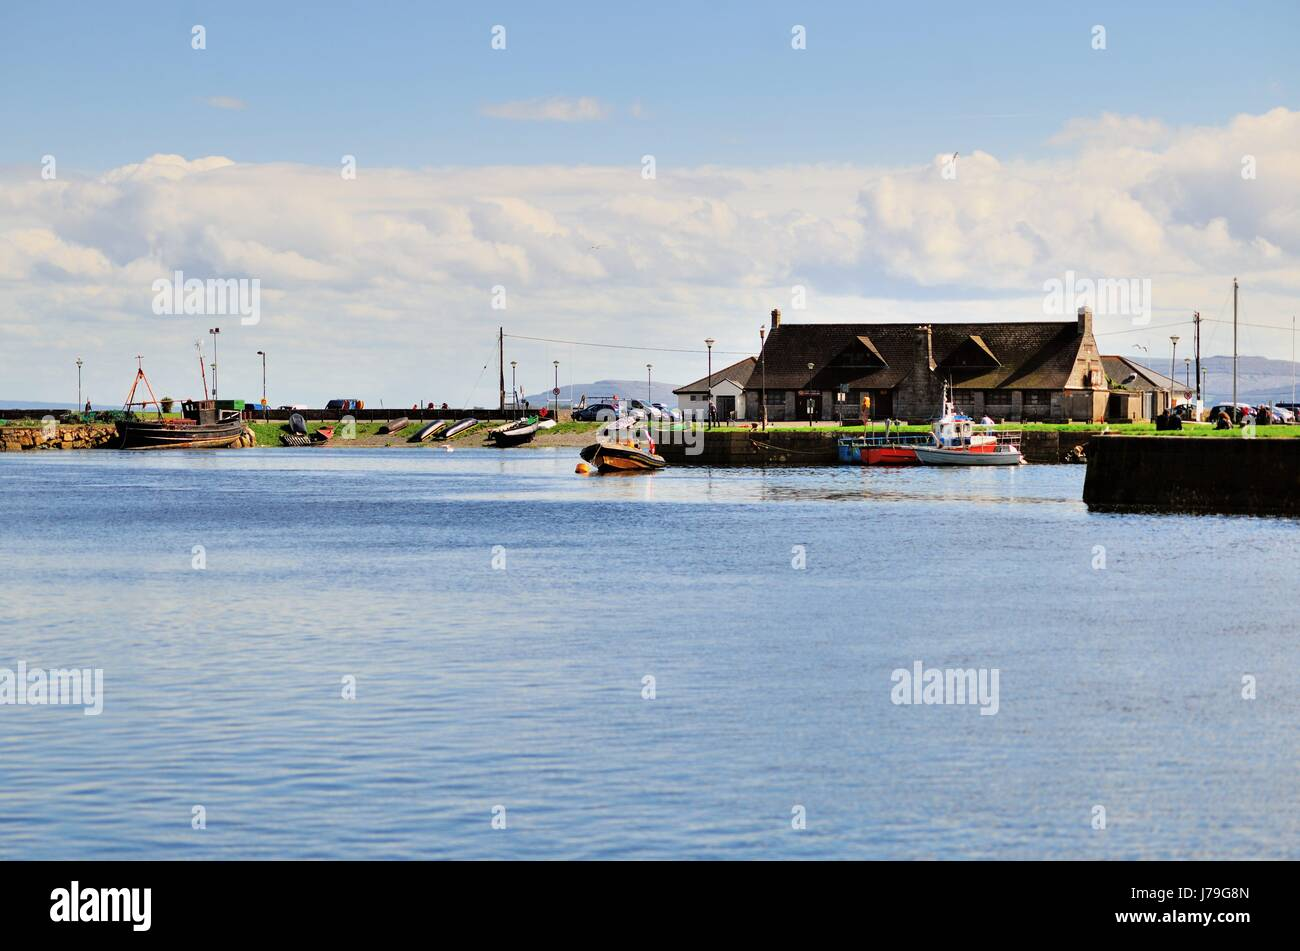 Open water of Galway Bay in Galway, County Galway, Ireland. - Stock Image